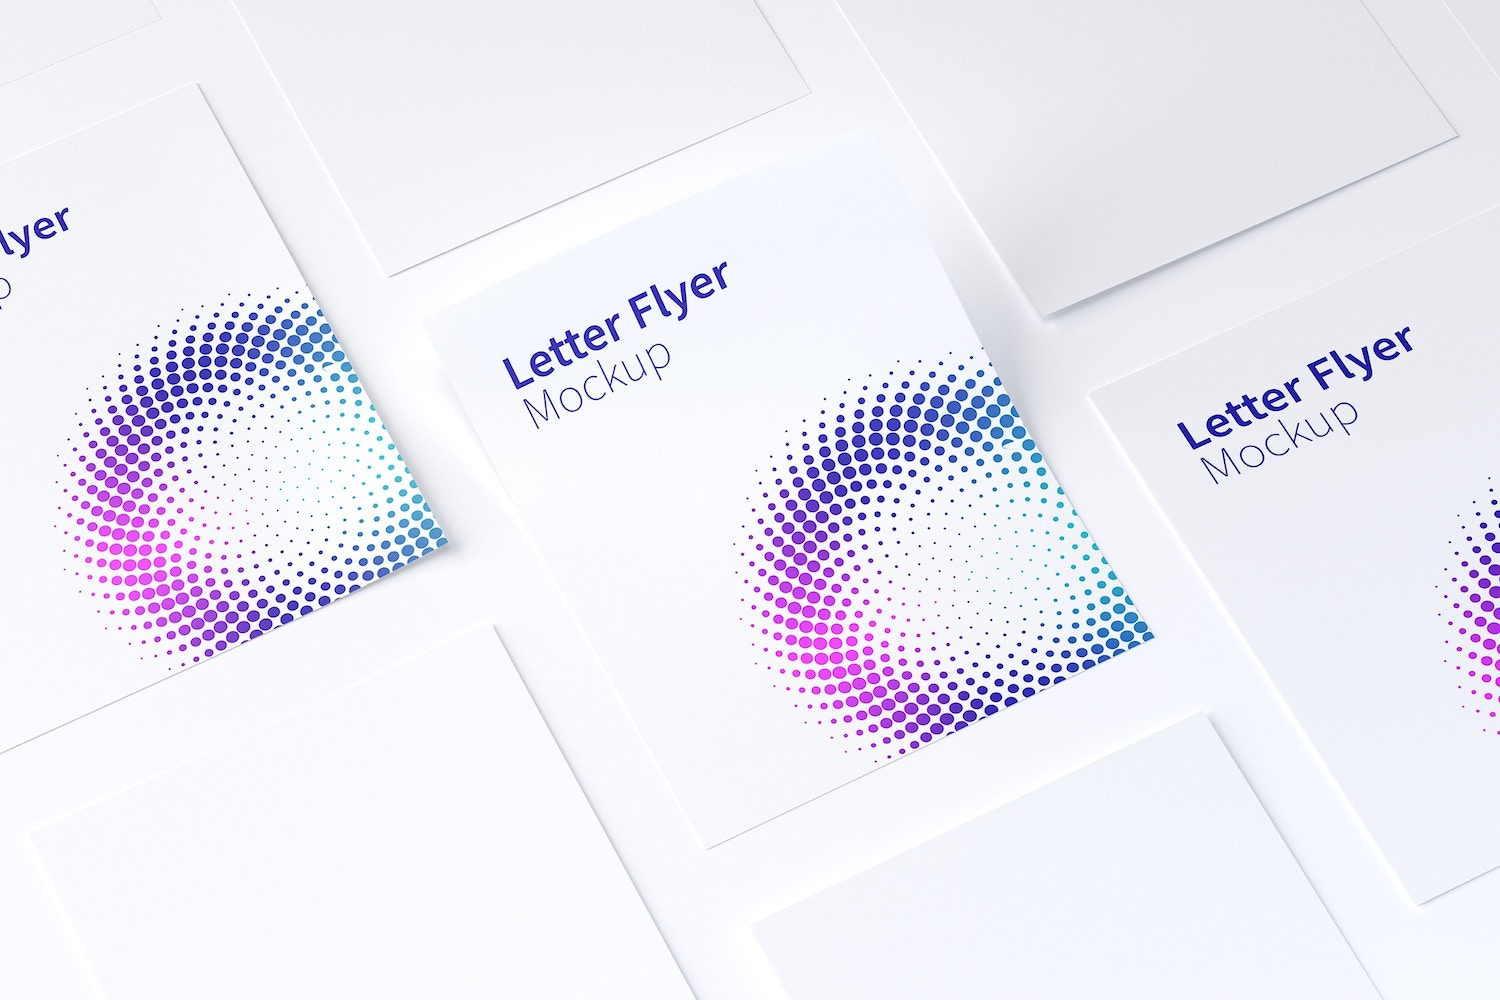 Letter Flyer Mockup 02 by Original Mockups on Original Mockups